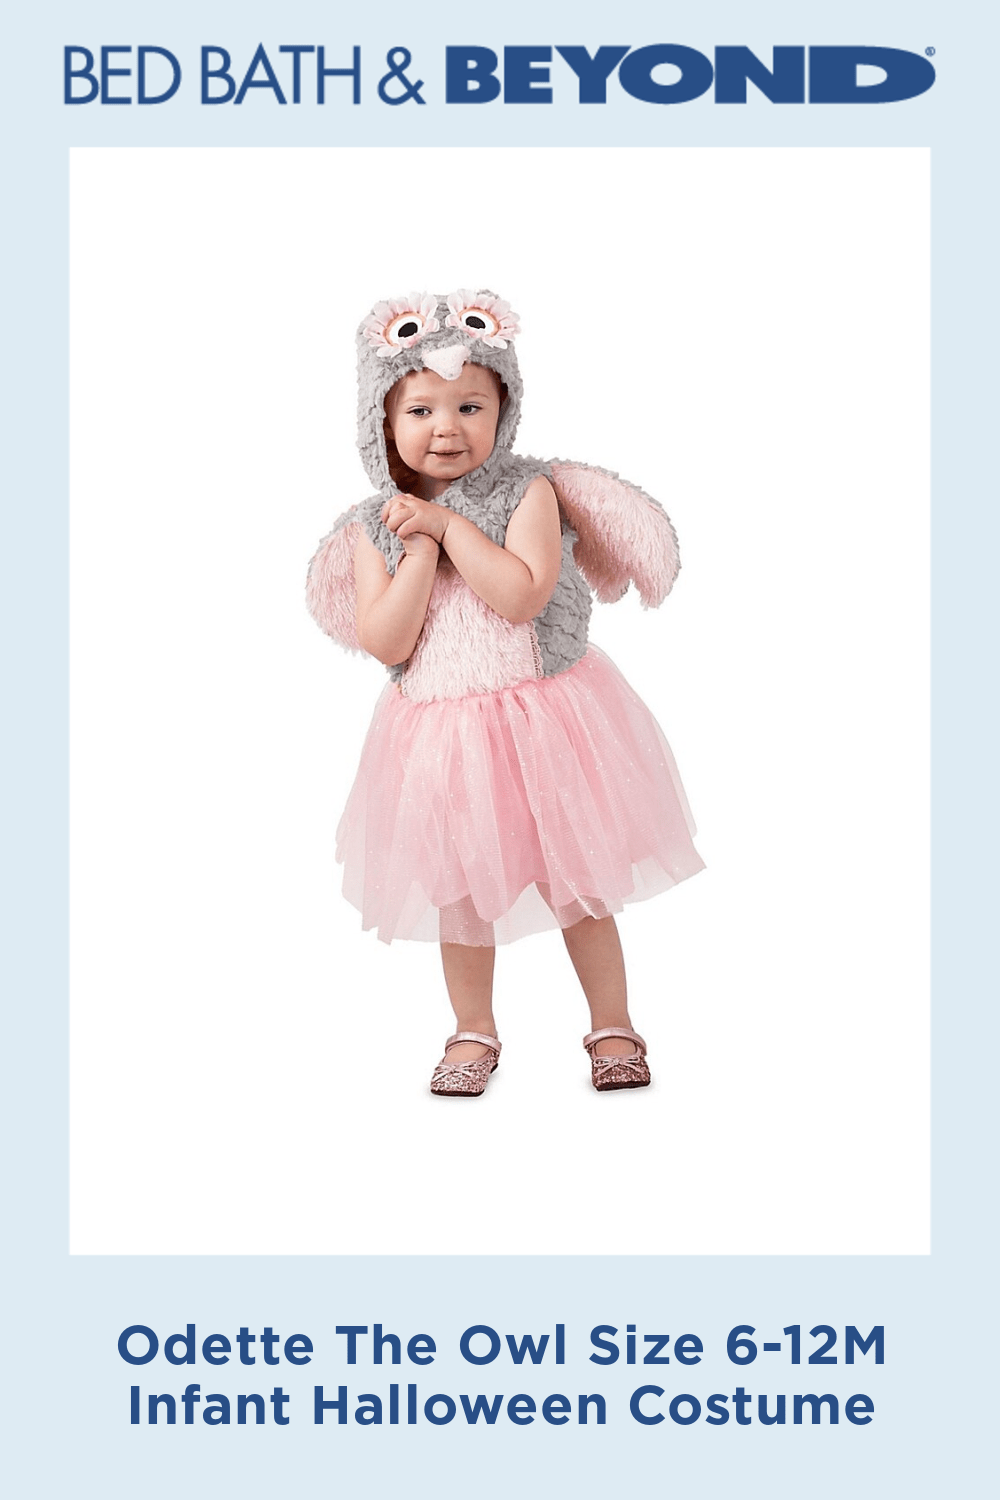 Odette The Owl Size 6-12M Infant Halloween Costume #halloweencostumesforinfants Odette The Owl Size 6-12M Infant Halloween Costume #halloweencostumesforinfants Odette The Owl Size 6-12M Infant Halloween Costume #halloweencostumesforinfants Odette The Owl Size 6-12M Infant Halloween Costume